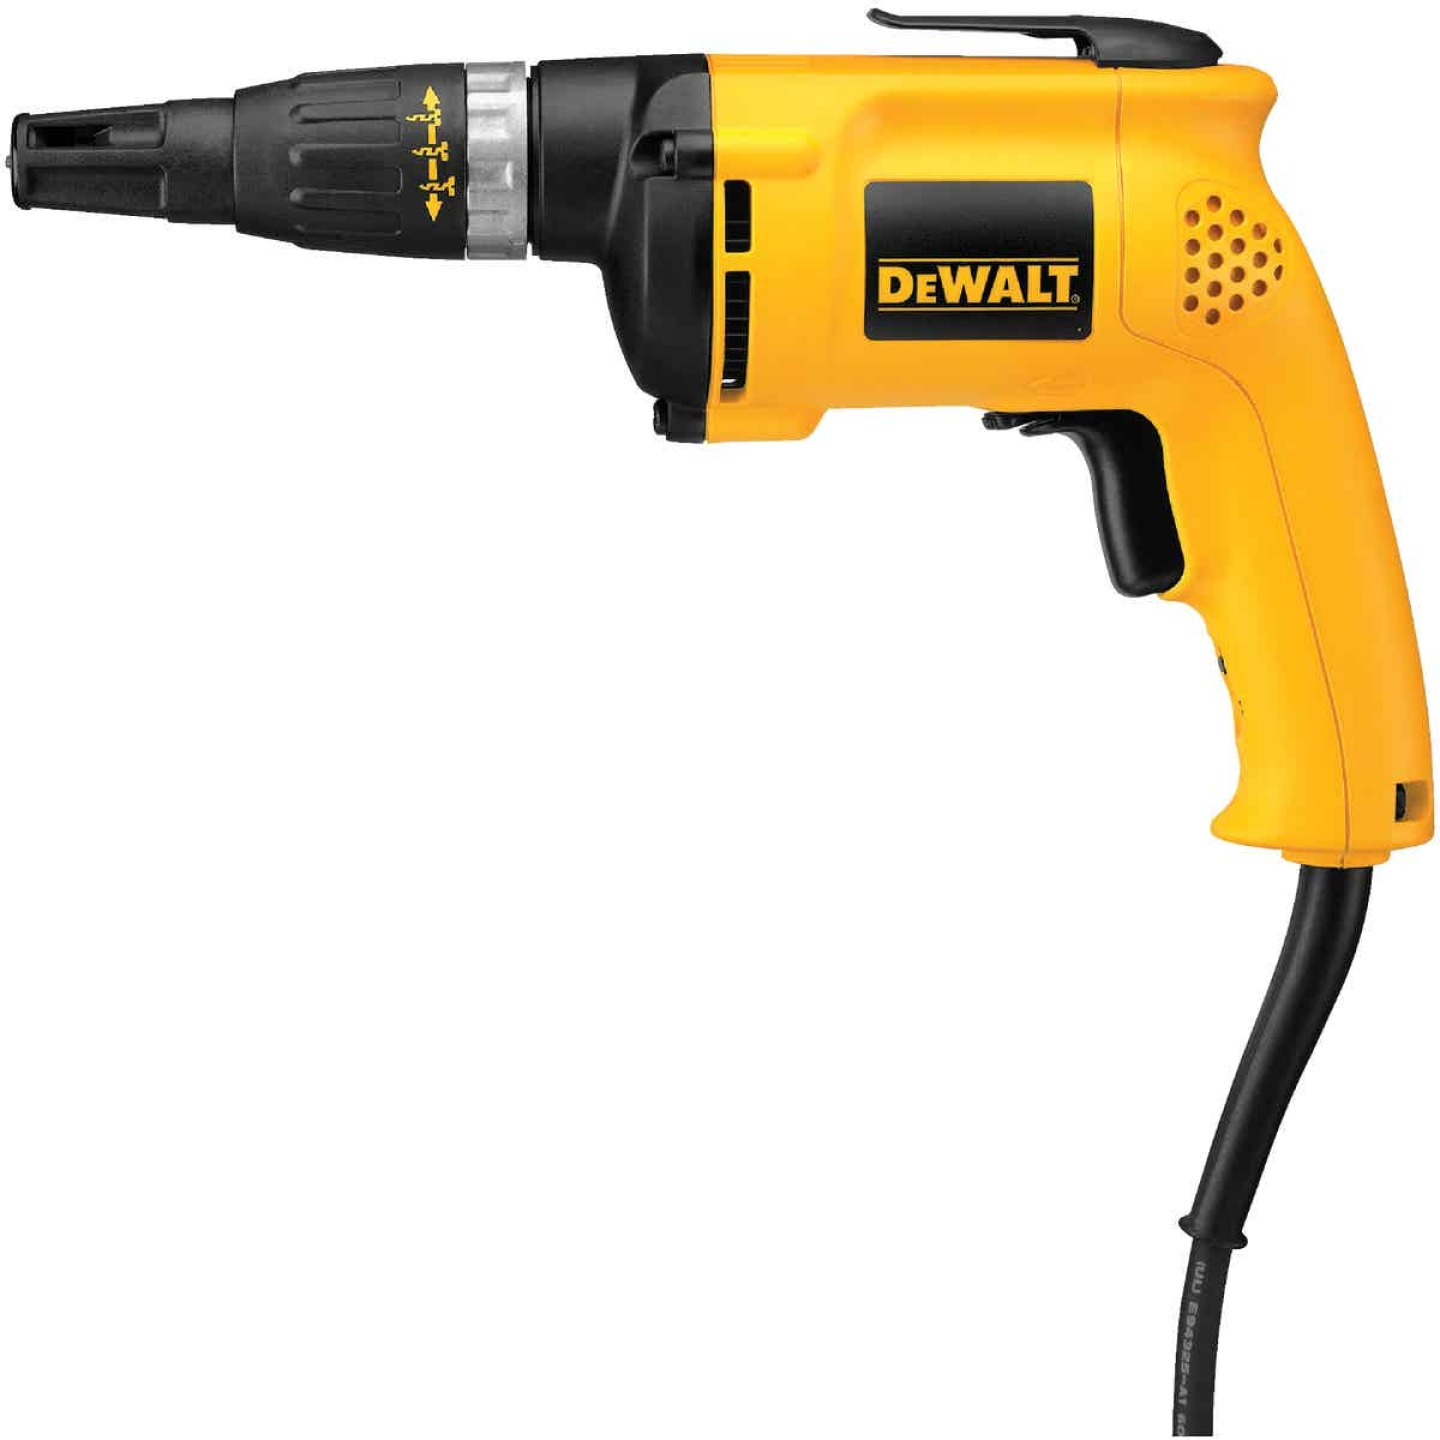 DeWalt 6A/5300 rpm 60 In./Lb. Torque Electric Screwgun Image 1